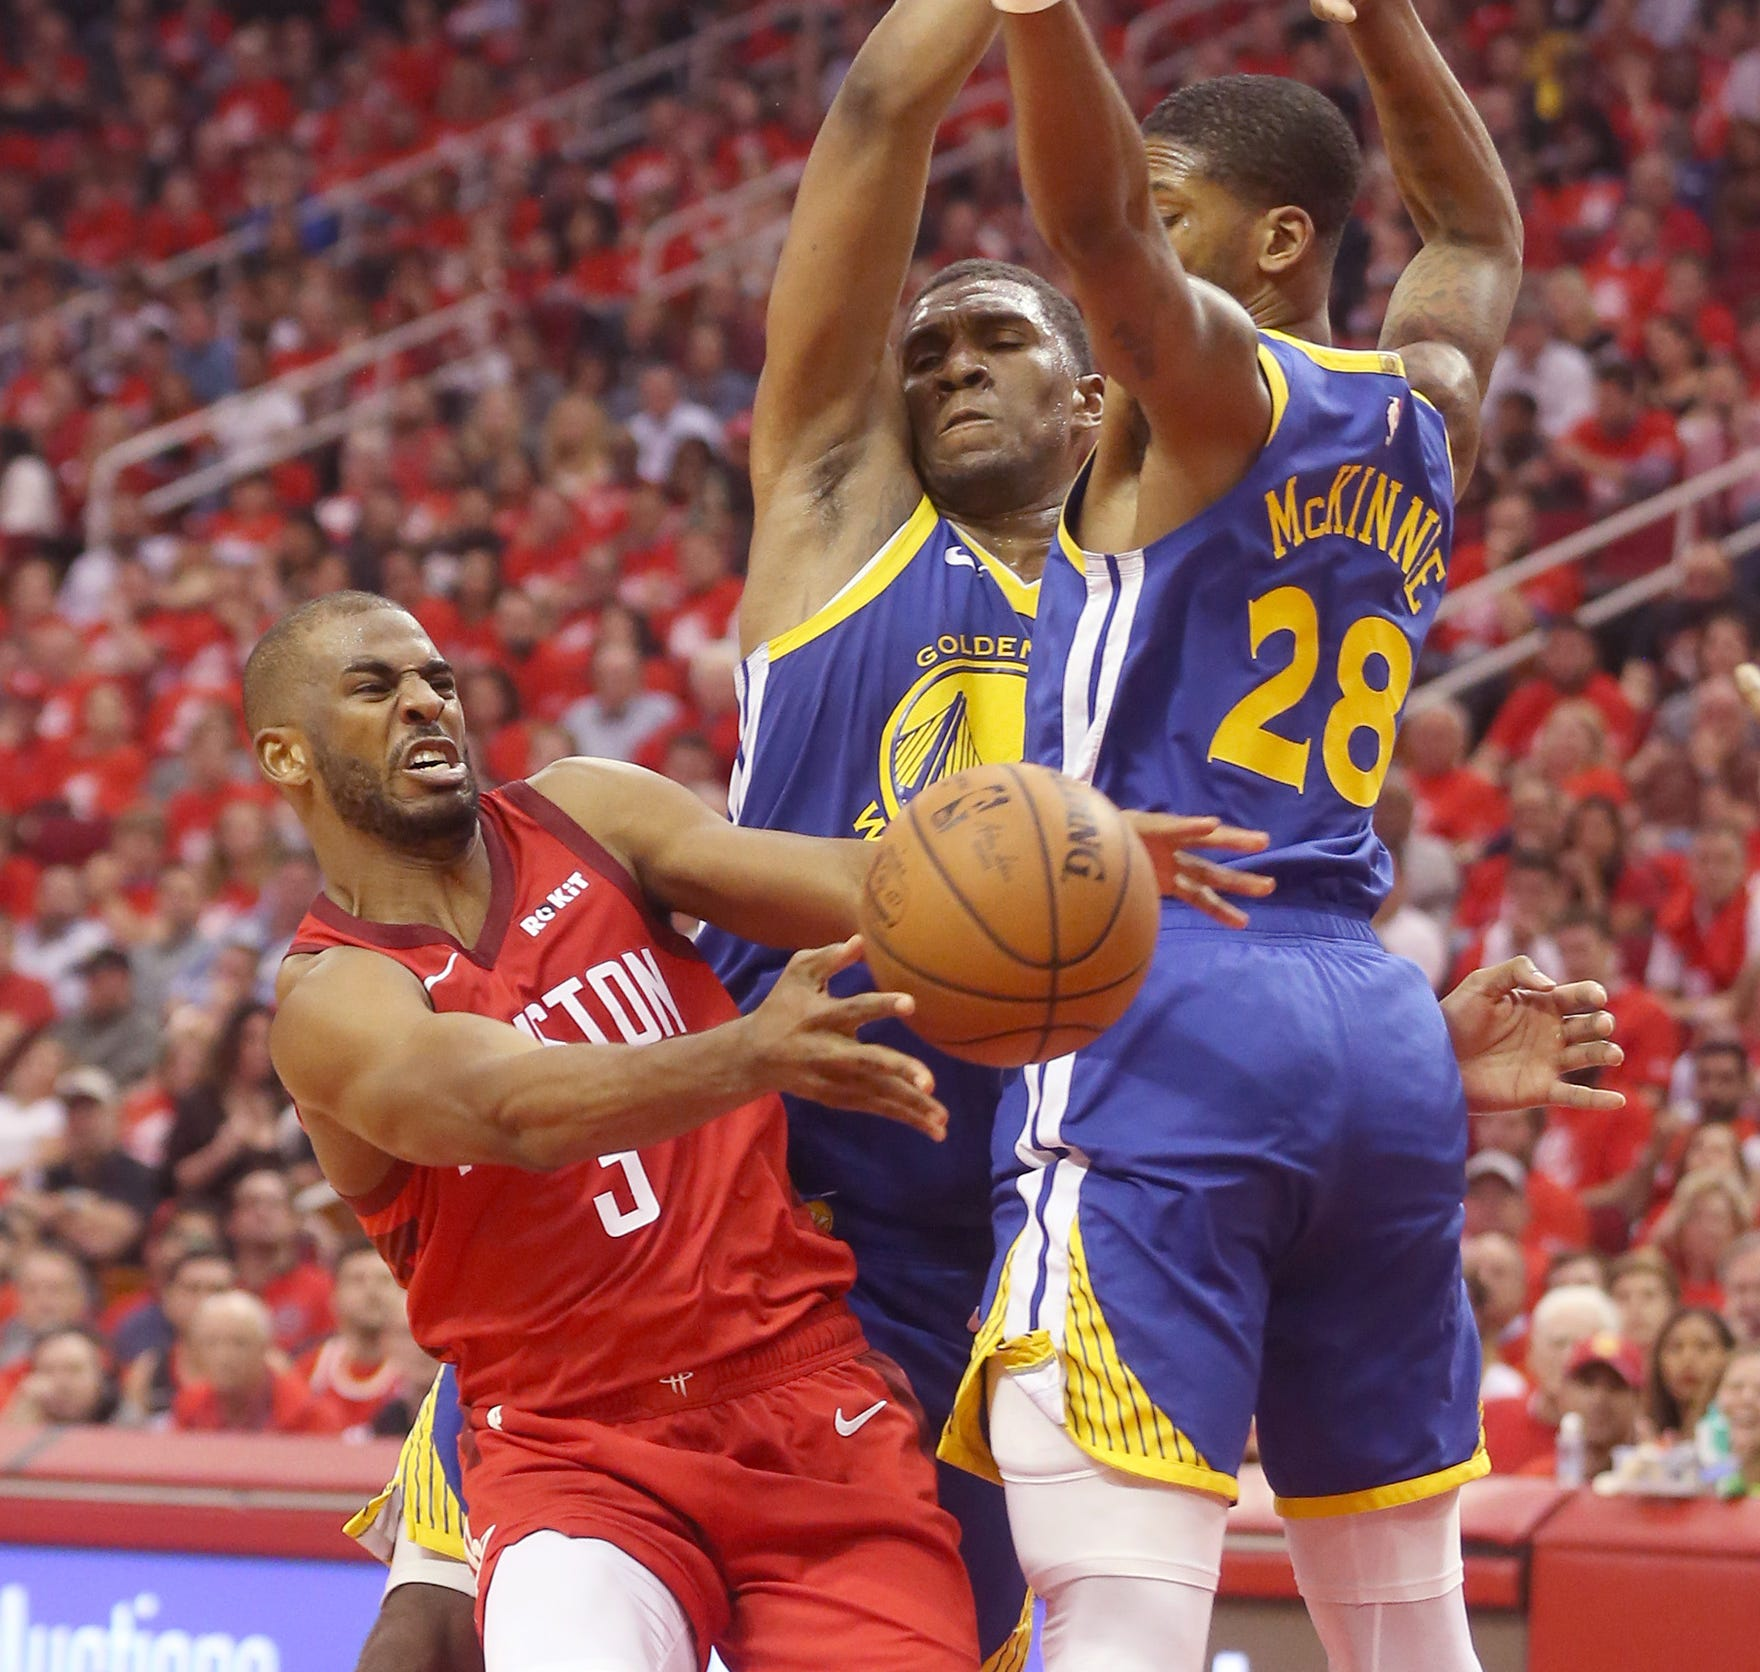 May 10: Rockets guard Chris Paul (3) tries to pass around Warriors defenders Alfonzo McKinnie (28) and Kevon Looney (23) during Game 6 against the Warriors.